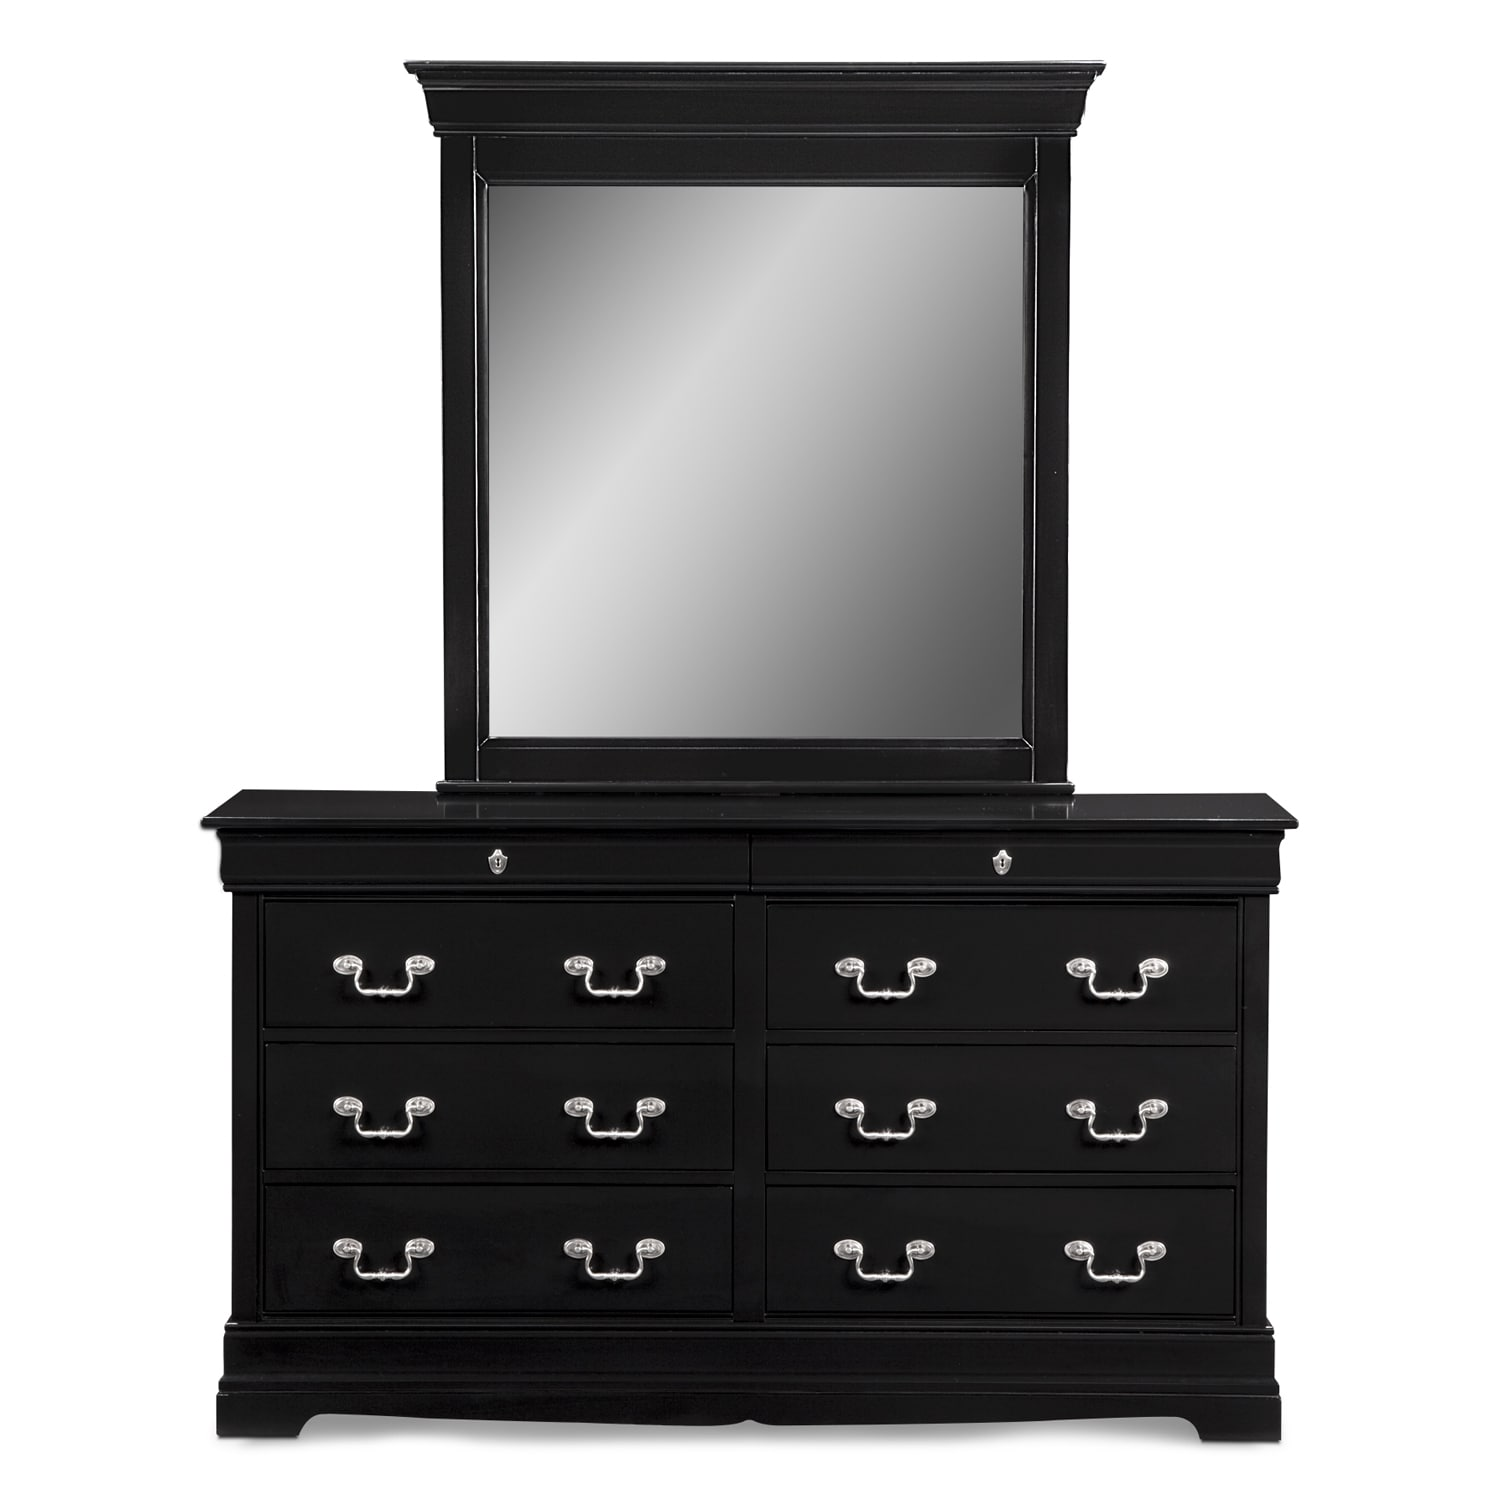 Neo Classic Dresser and Mirror Black American Signature Furniture